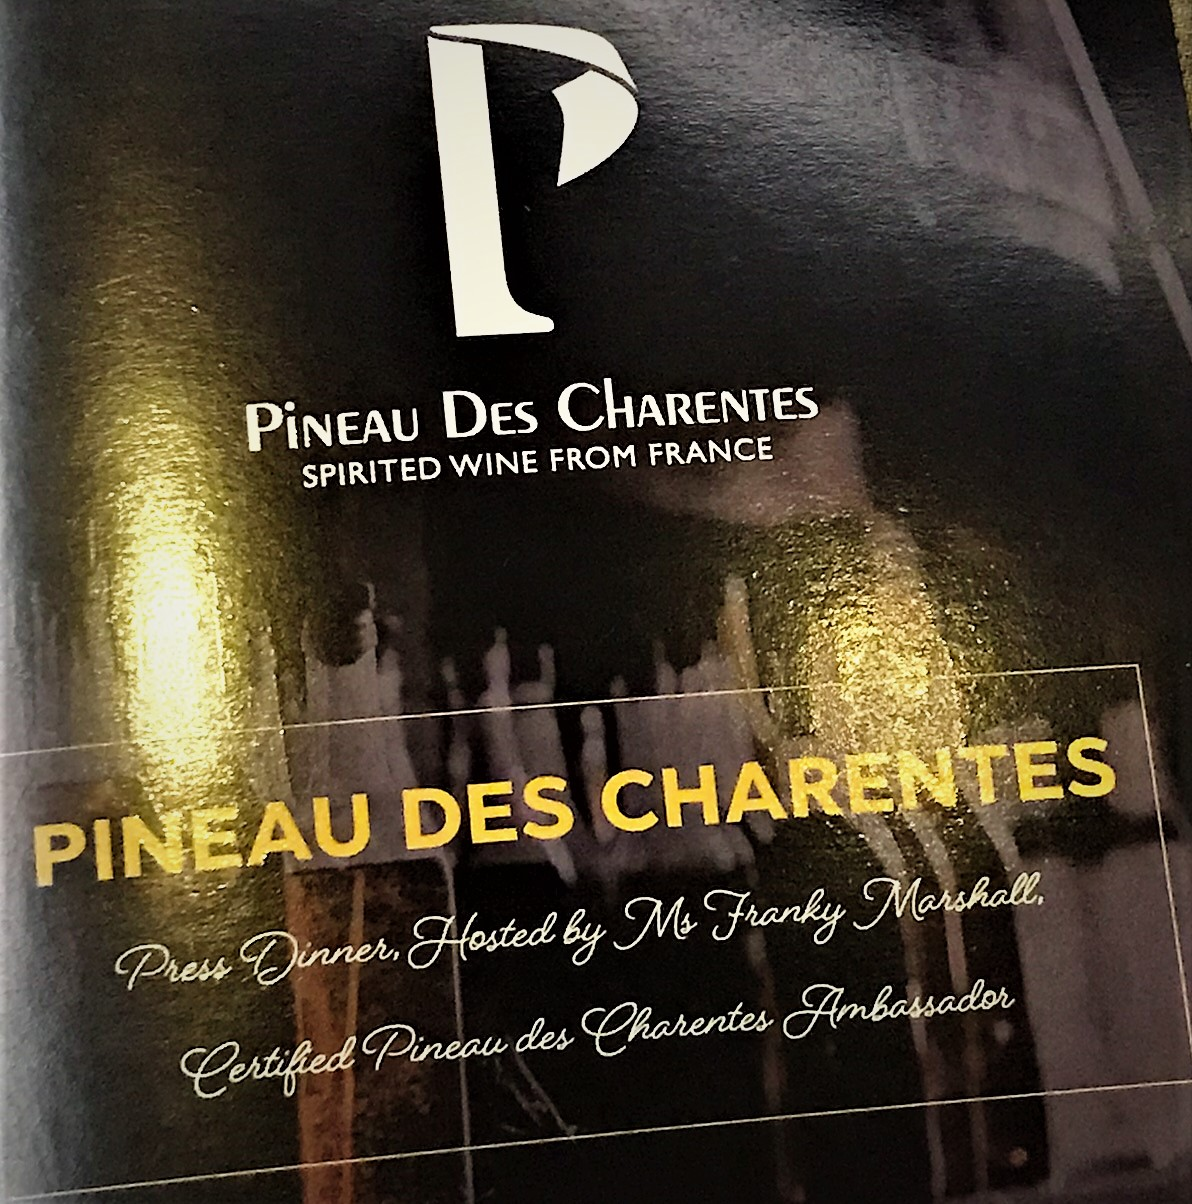 Pineau des Charentes: Cognac's little brother – arrives in red and white